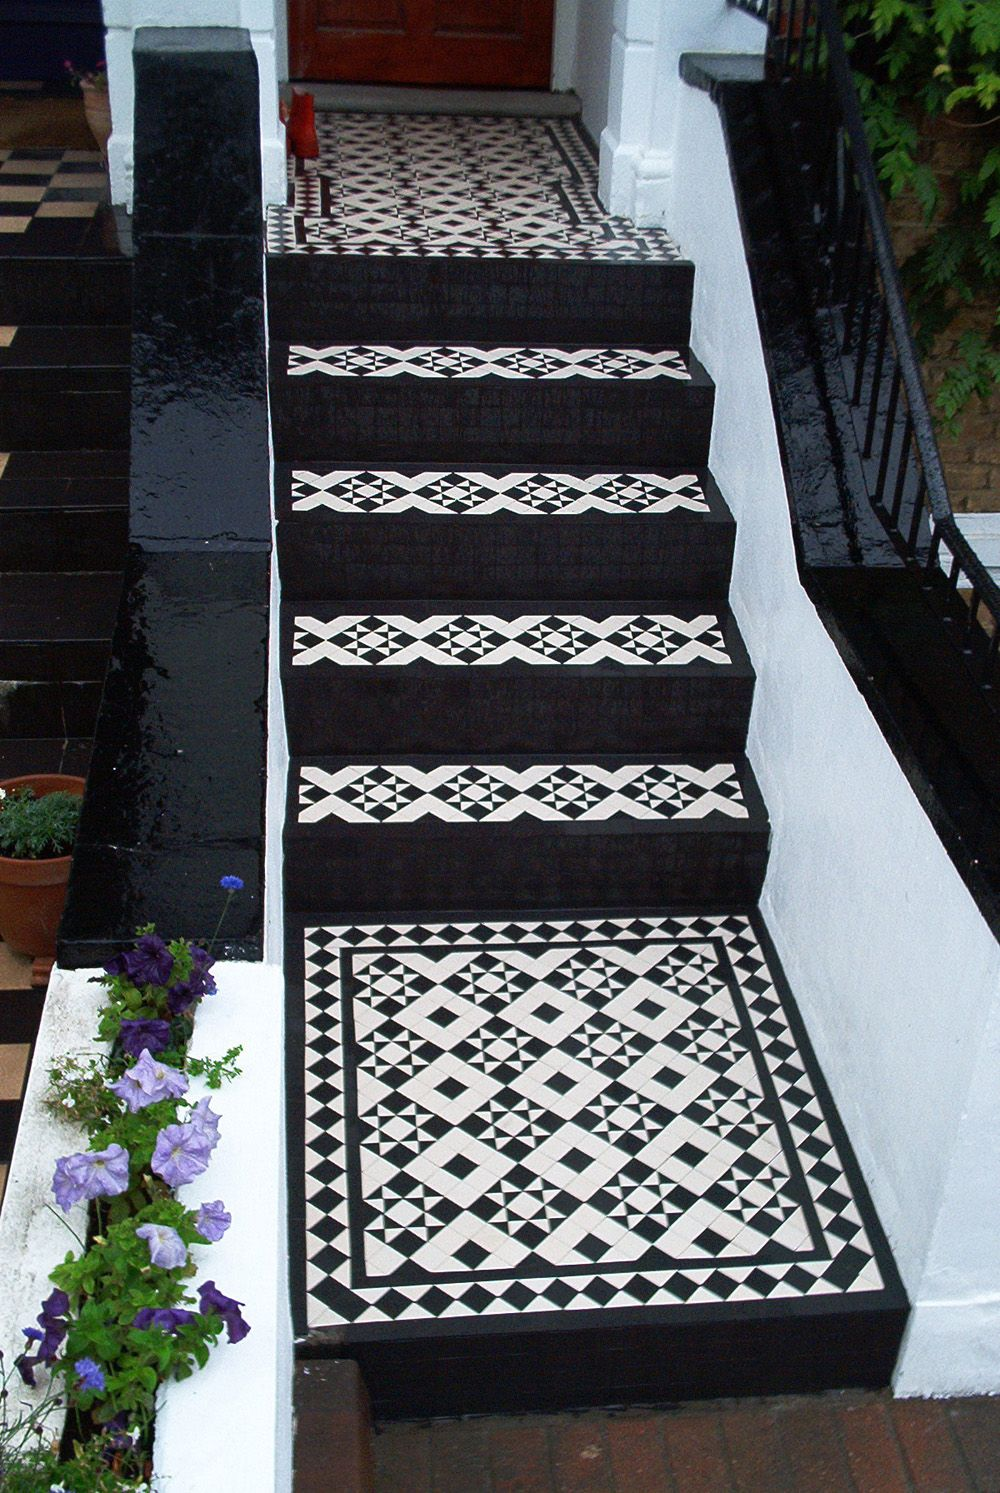 Mosaic Steps Box And Star Pattern Floor Front Door